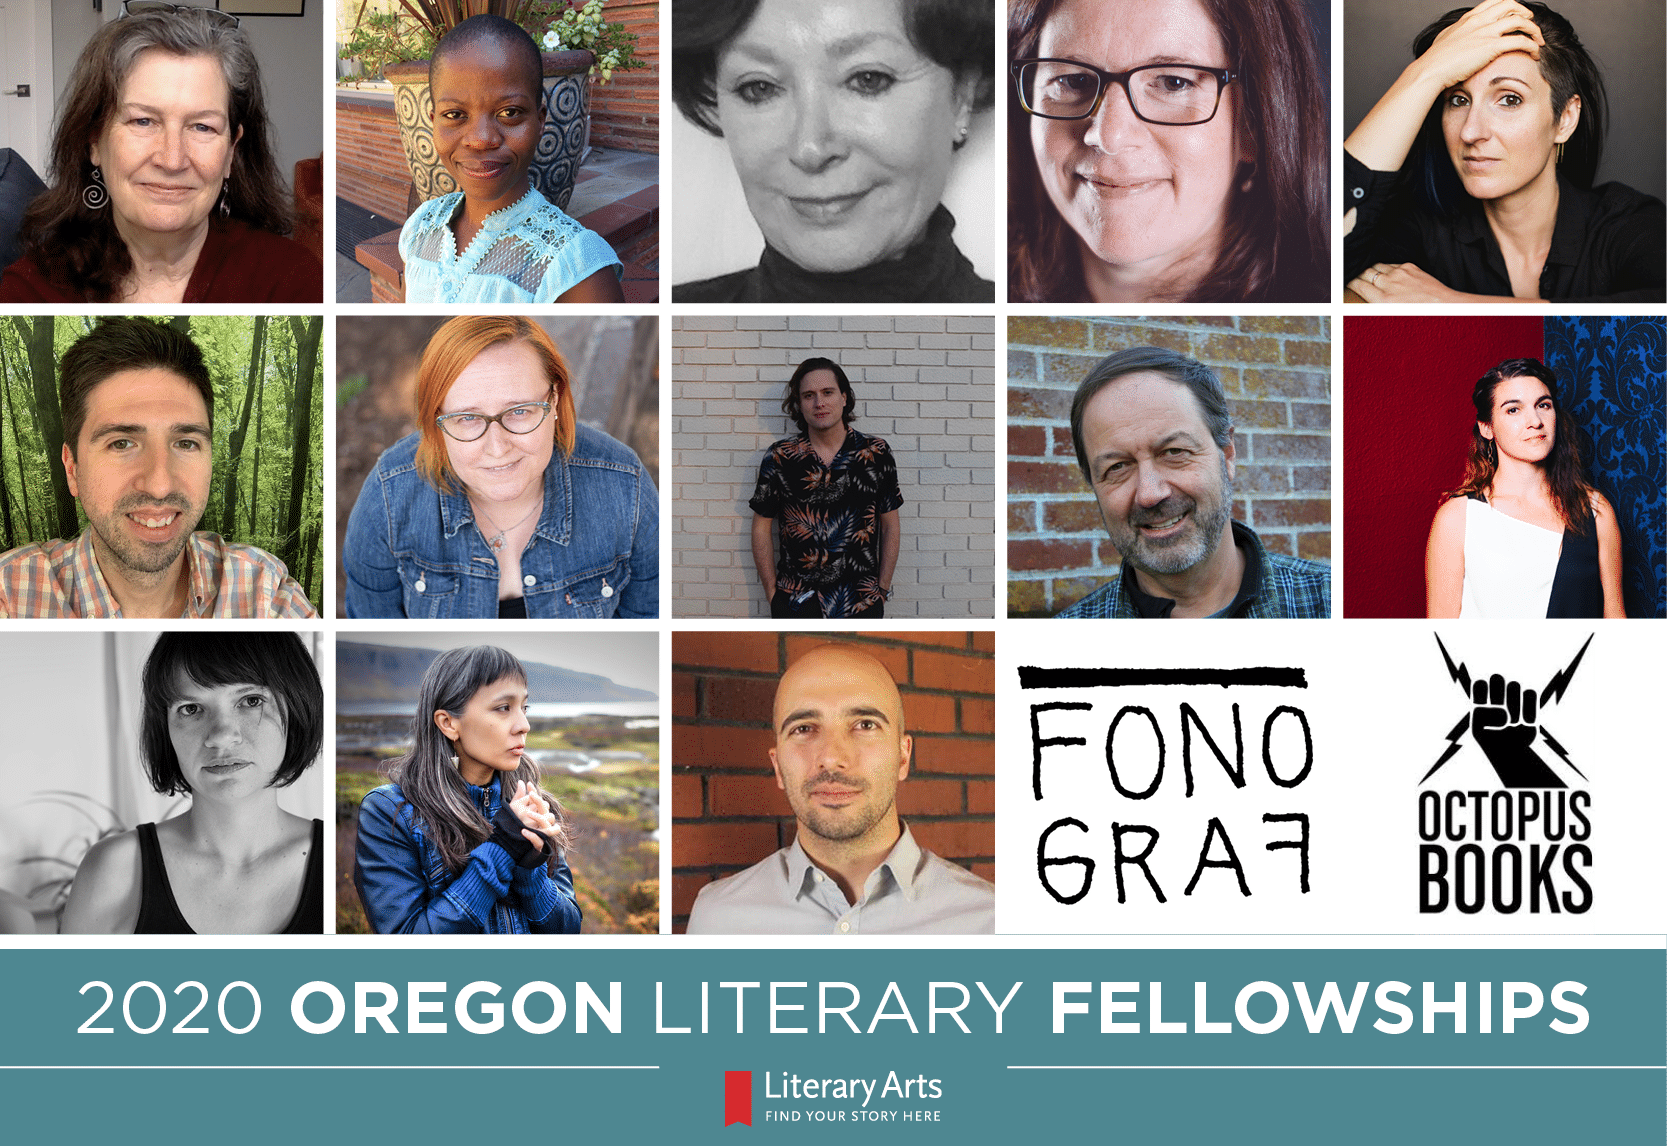 Announcing the 2020 Oregon Literary Fellowship Recipients